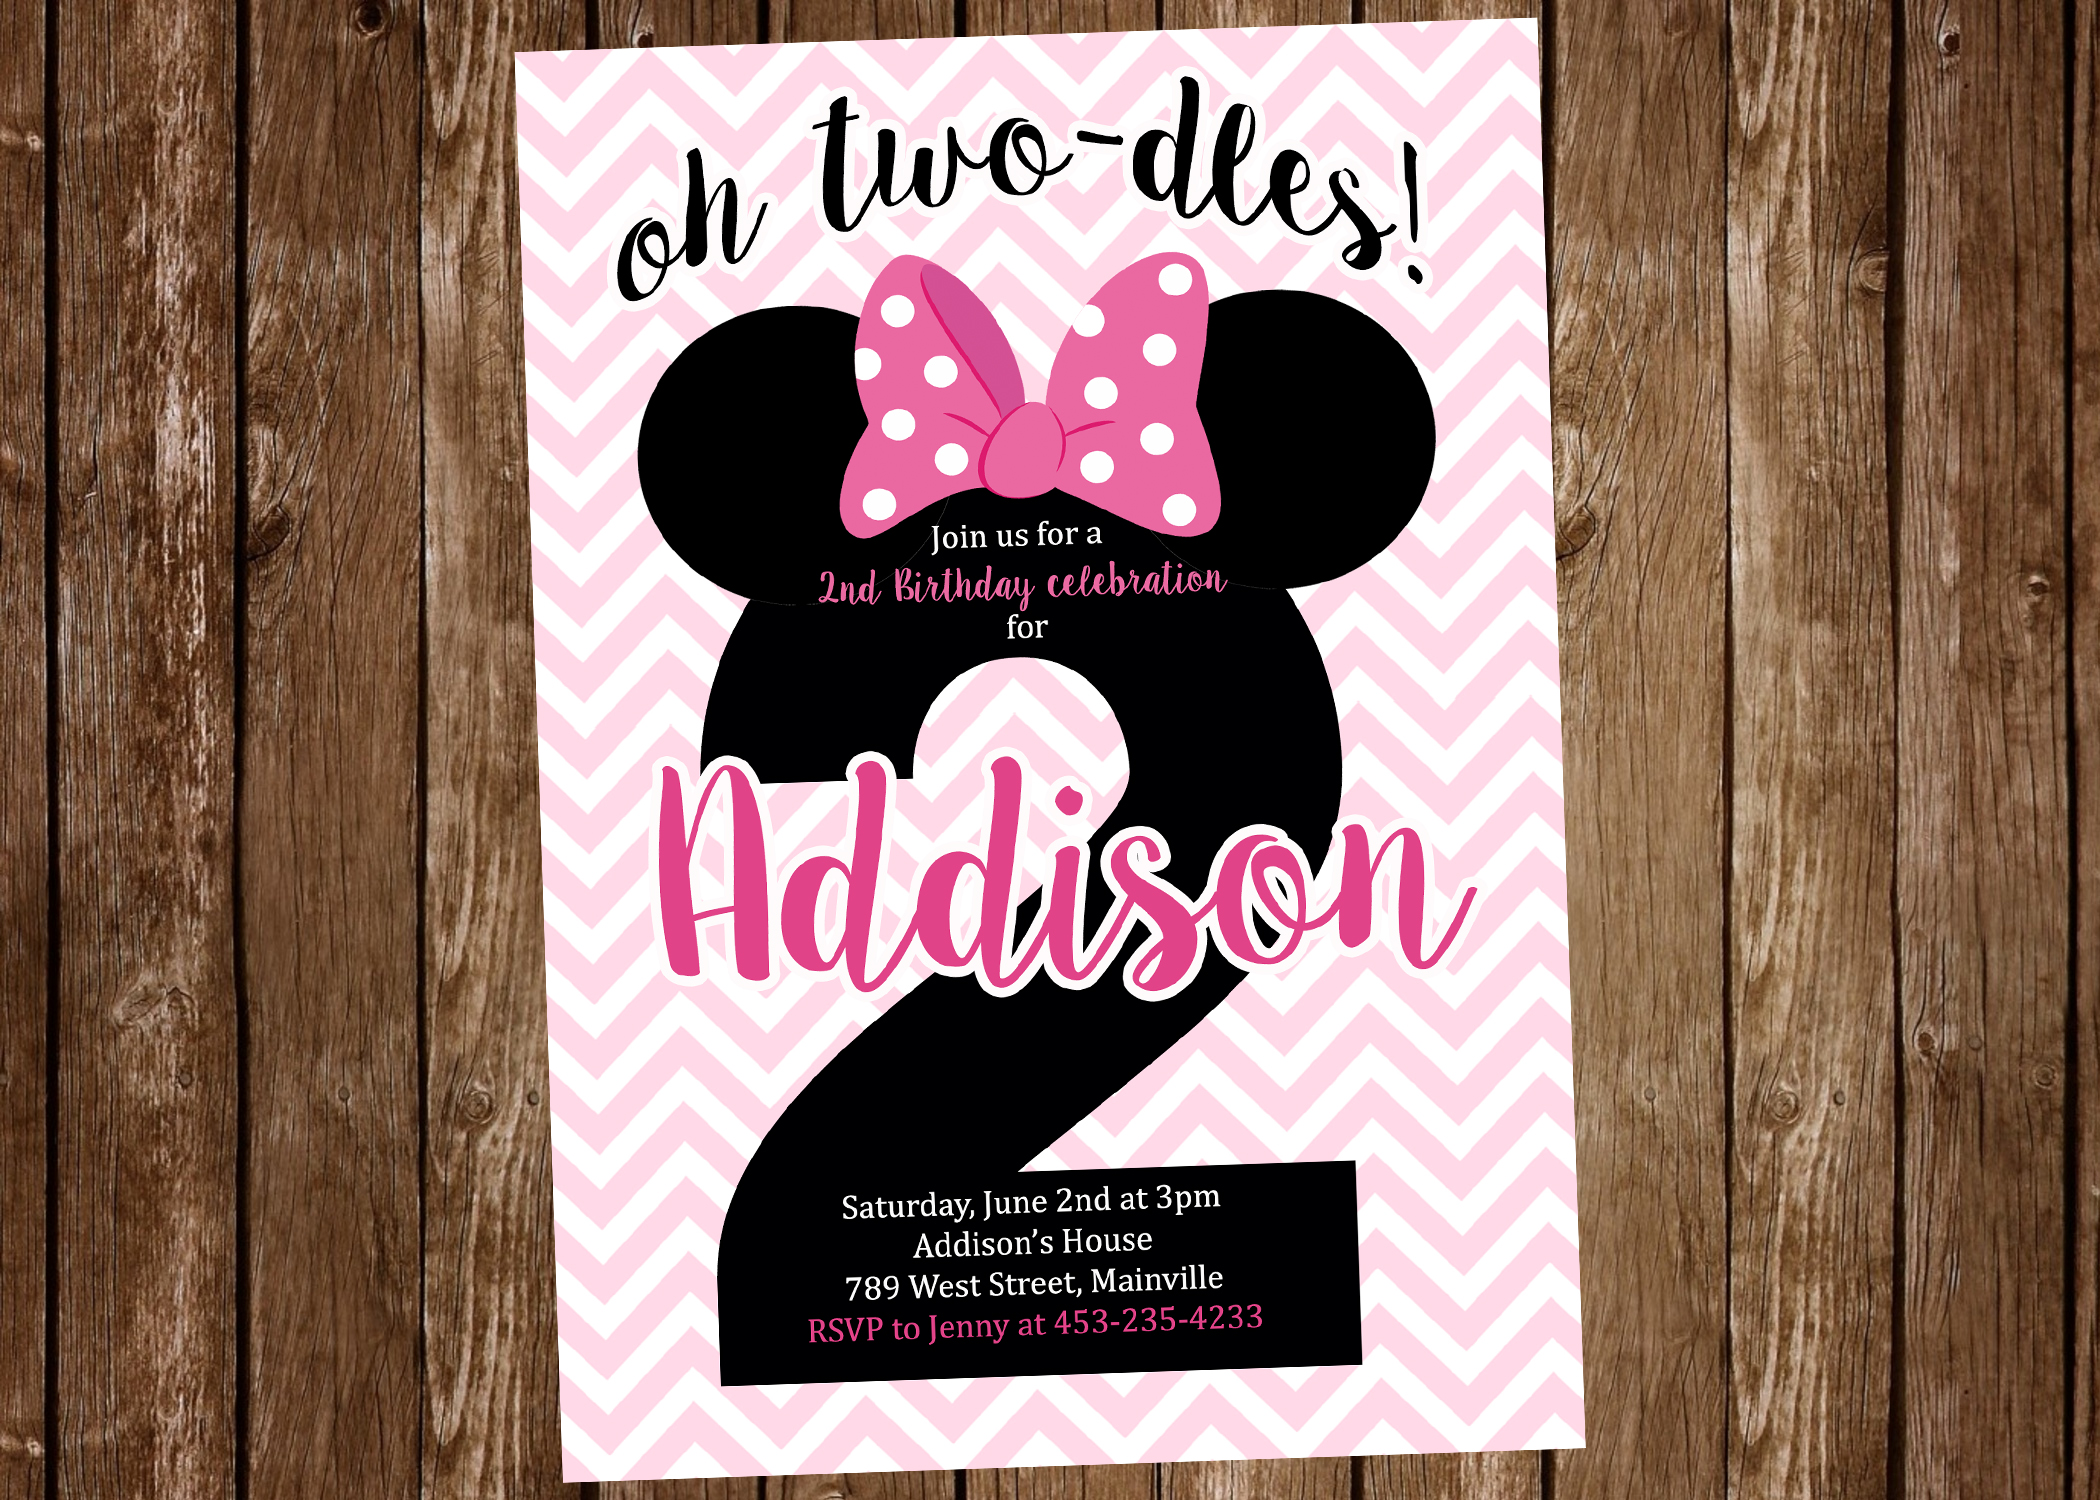 Minnie Mouse 2nd Birthday Two Odles Birthday Party Invitation Digital Or Printed Pretty Paper Pixels Online Store Powered By Storenvy